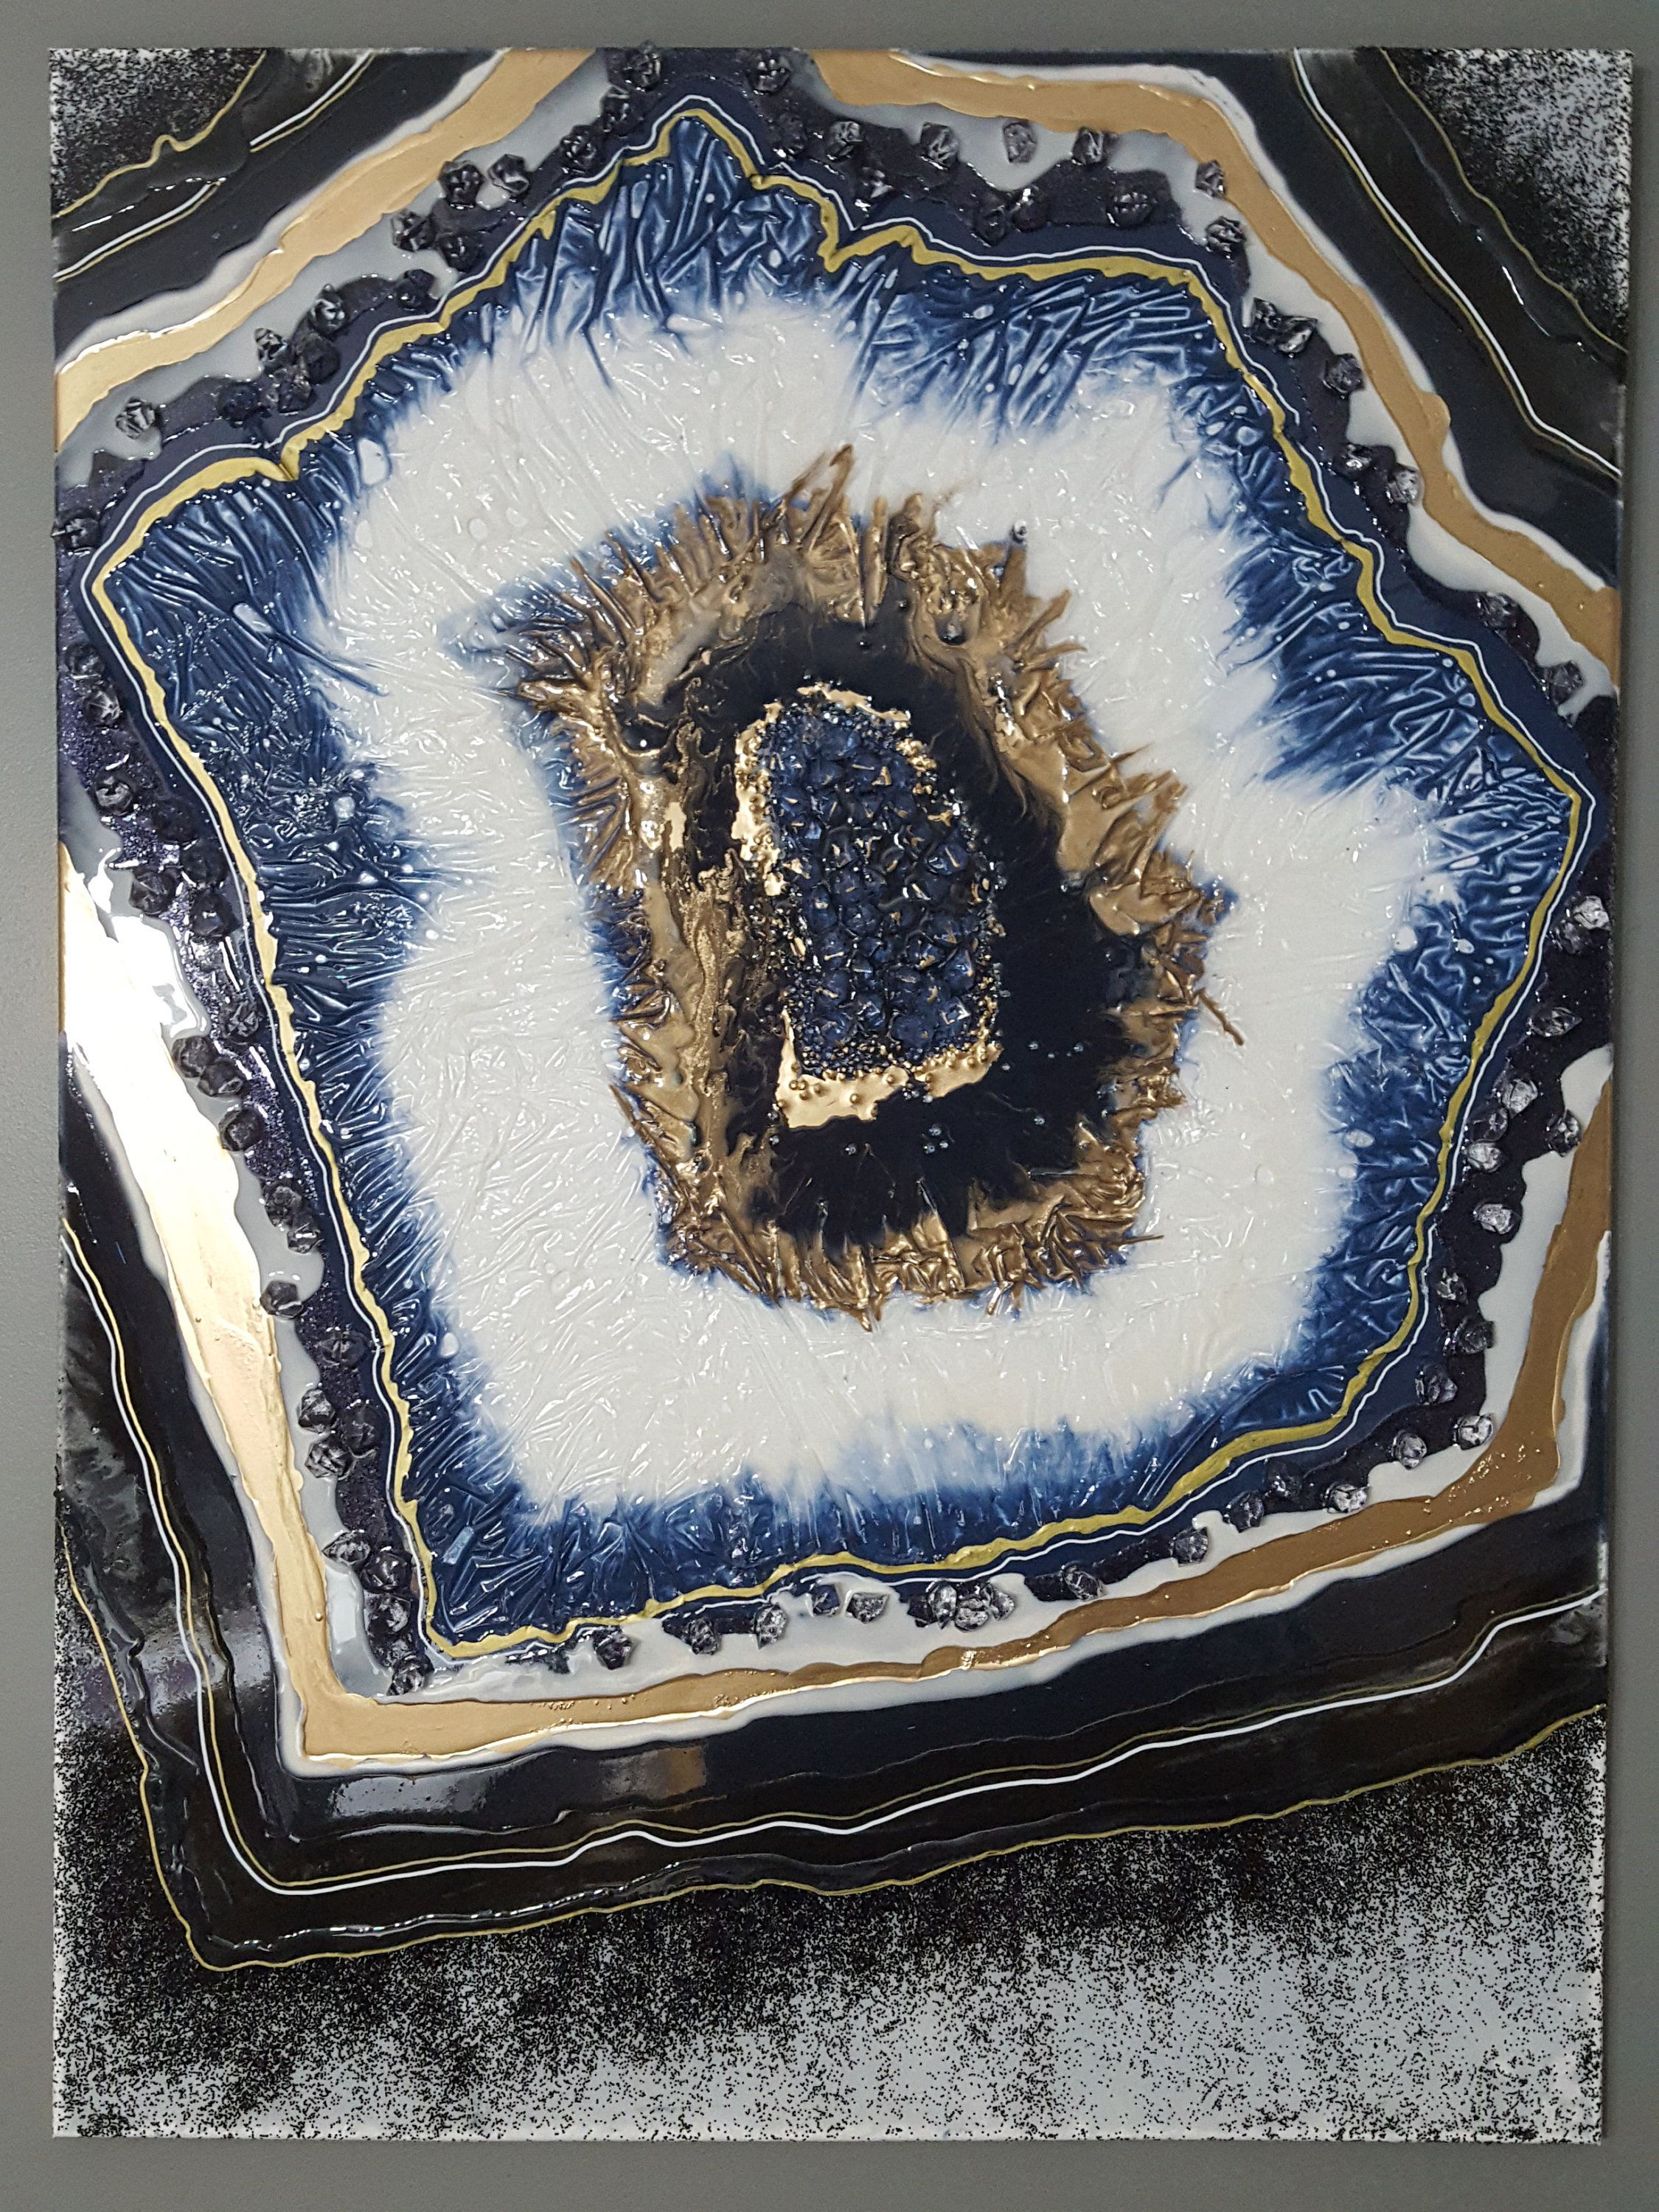 Geode Tile Acrylic Pour Mrw Art - Year of Clean Water